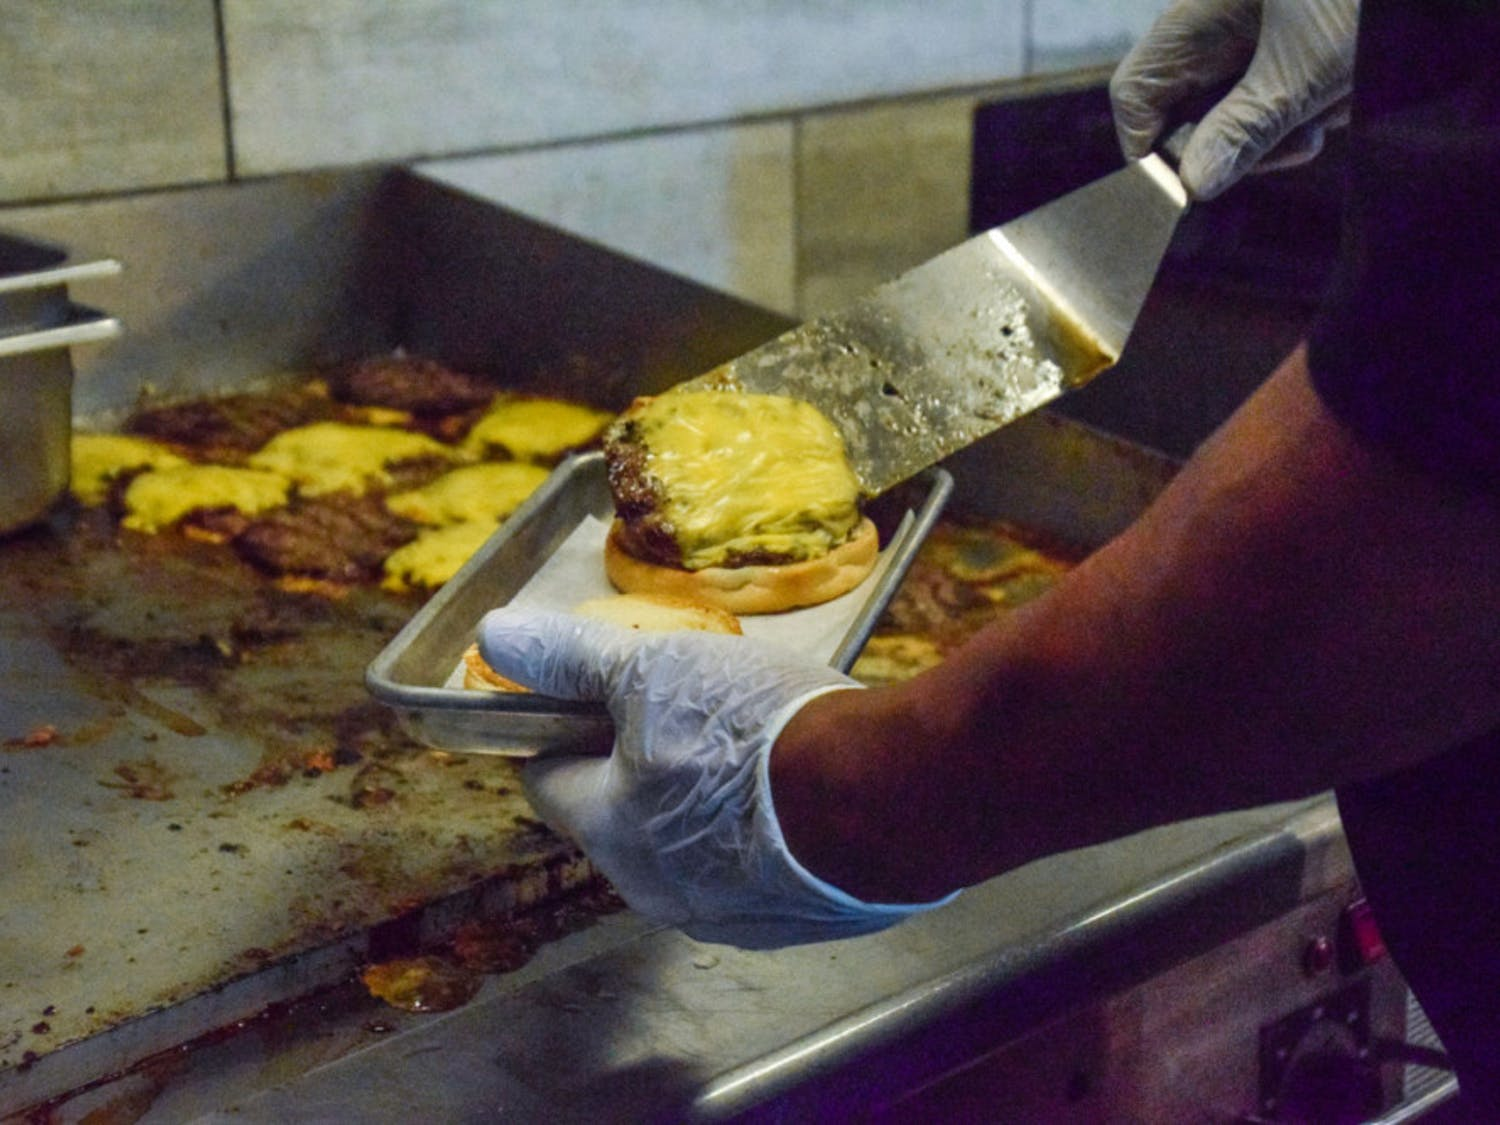 An employee prepares a cheeseburger at The Fresh Food Company. The 2019 Food Service Master Plan by Brailsford & Dunlavey and Petit Consulting said that Aramark's food in the UF dining halls isn't fresh.